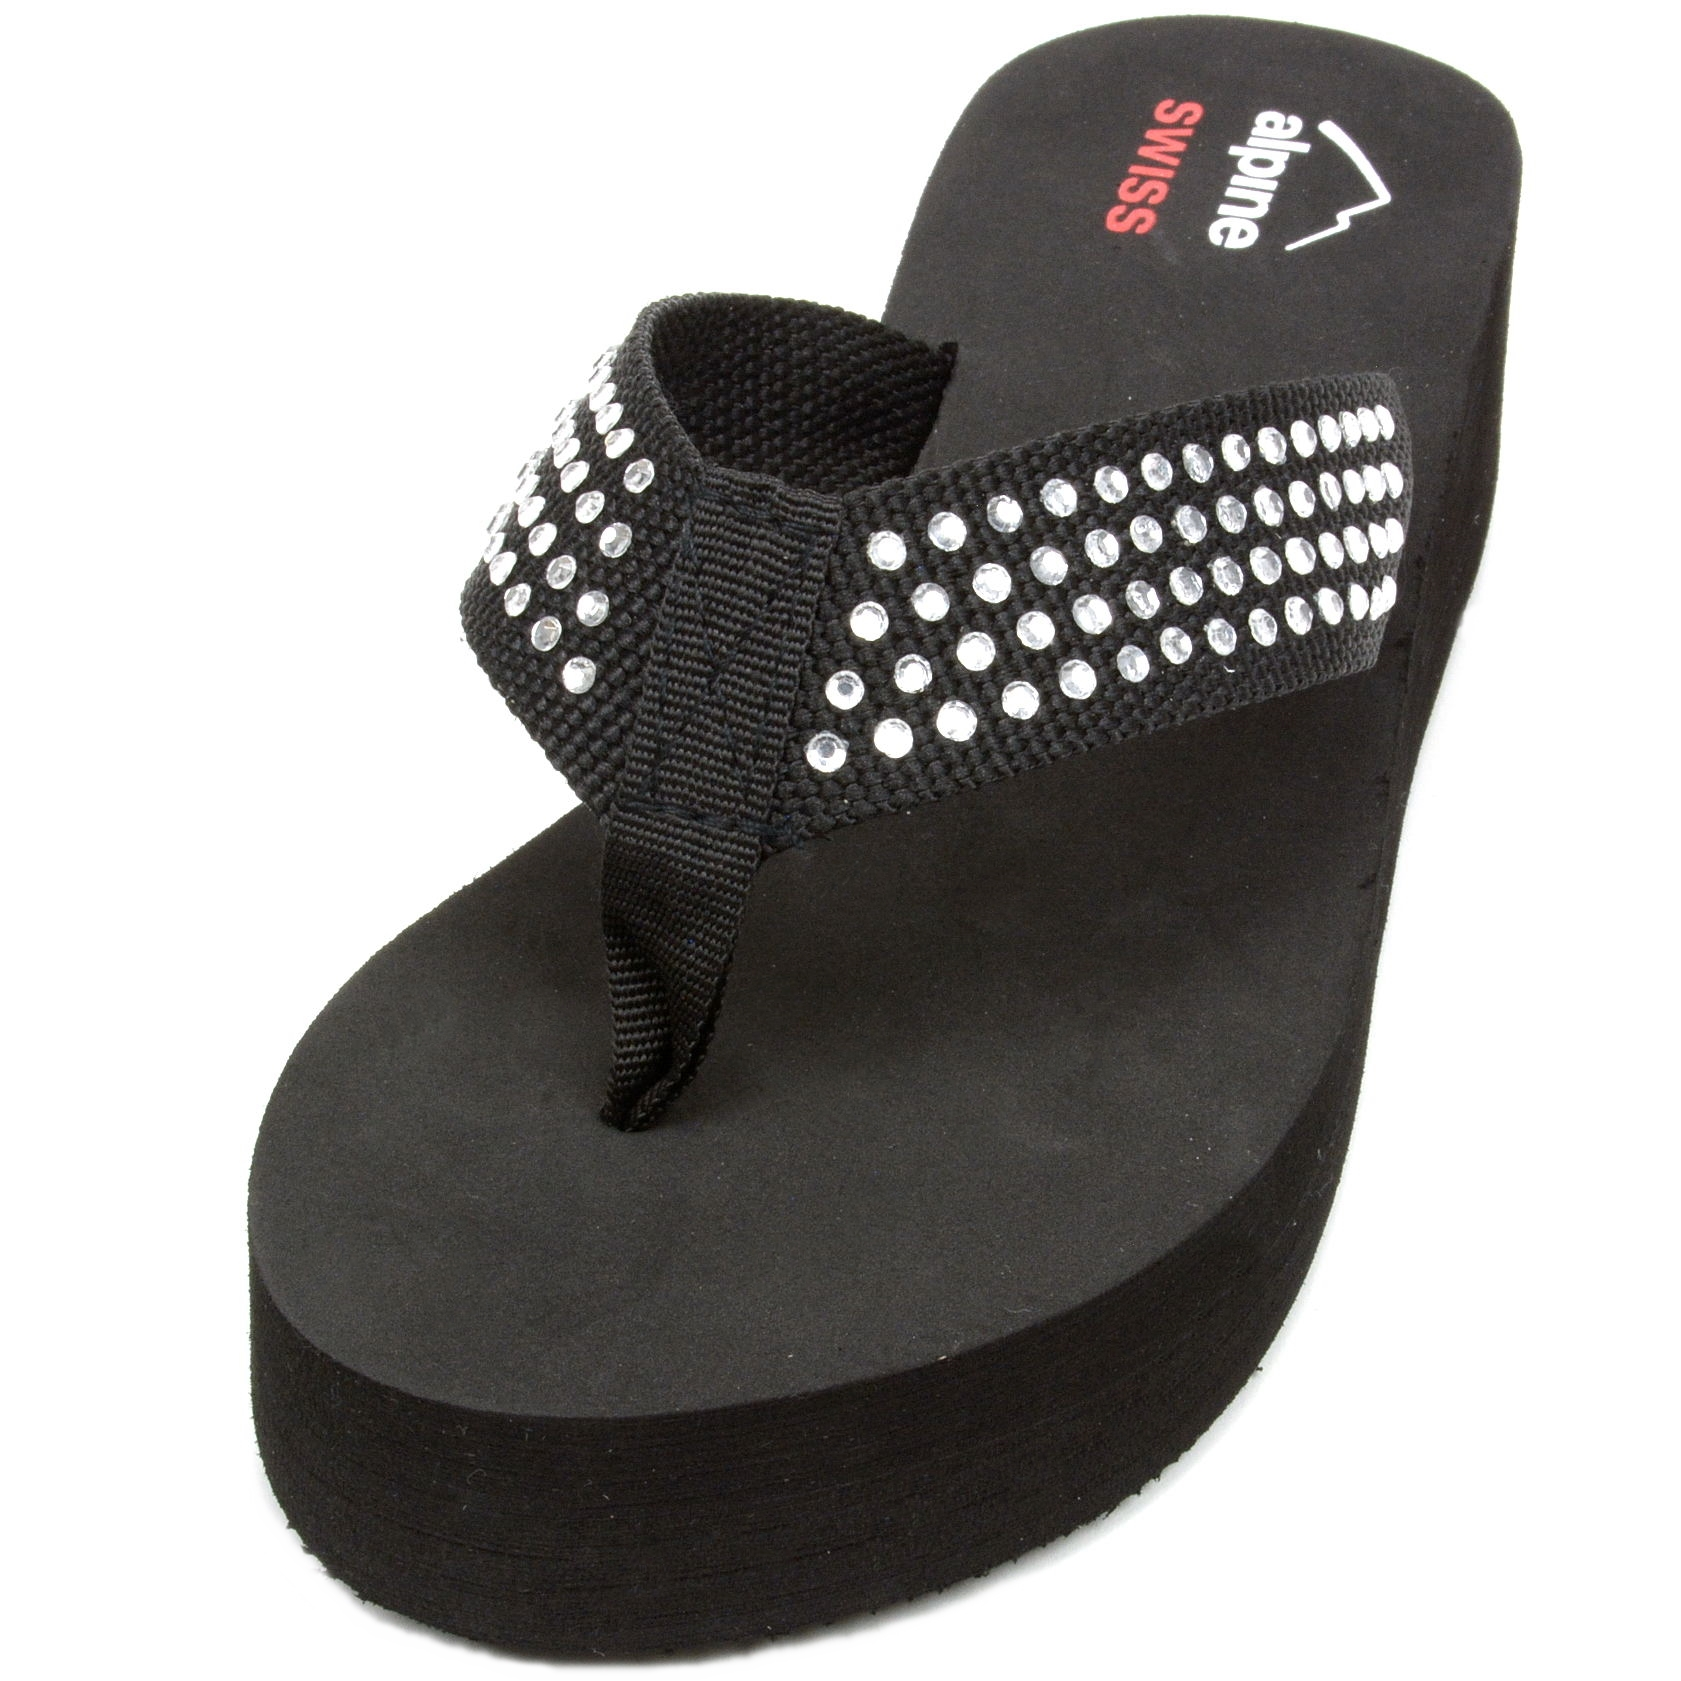 Alpine Swiss Womens Flip Flops Thong Sandals Rhinestone -4887